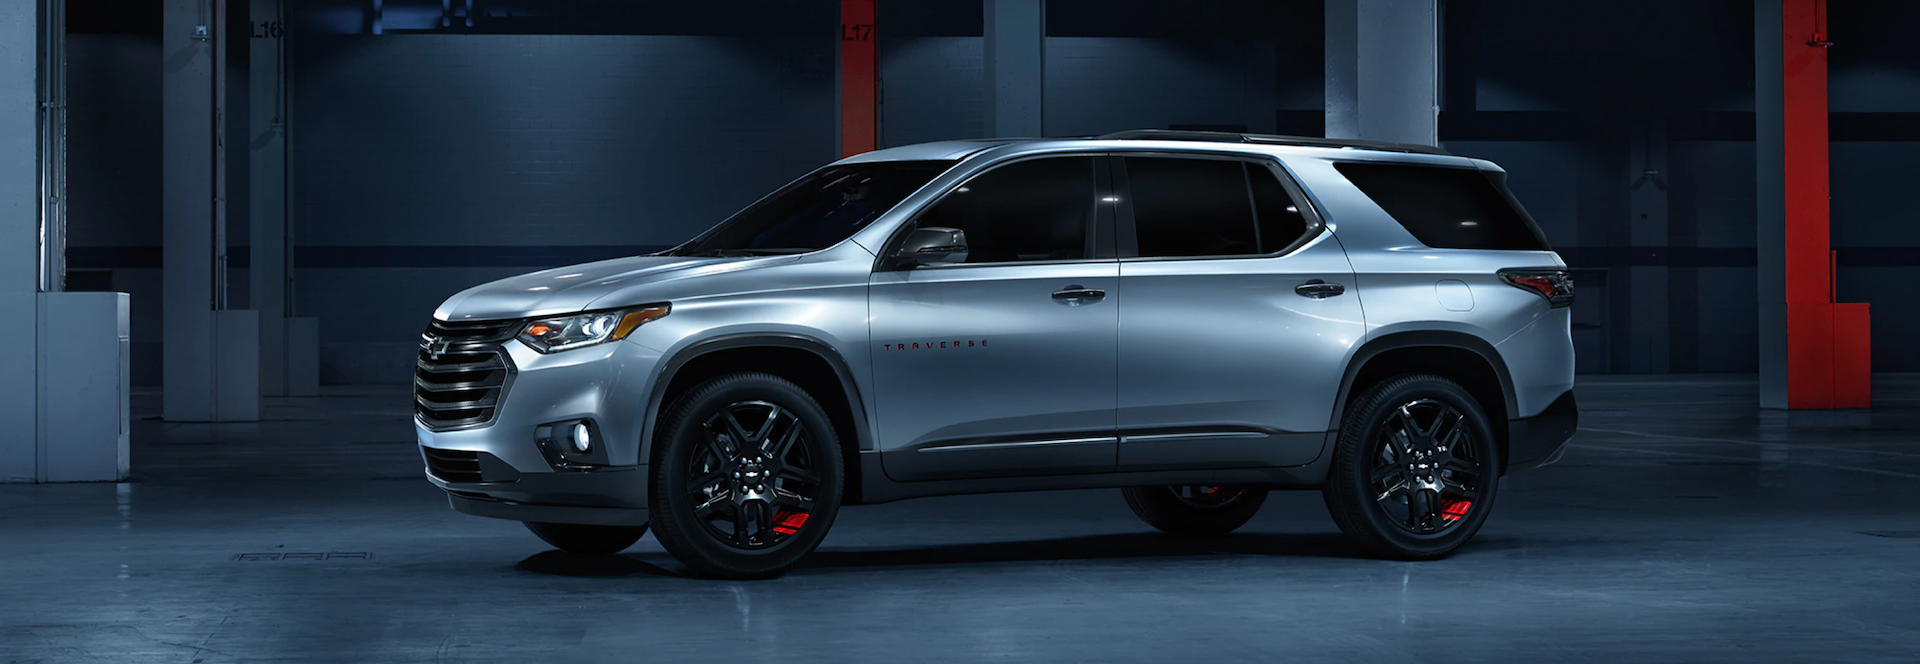 The 2021 Chevy Traverse in Odessa, TX